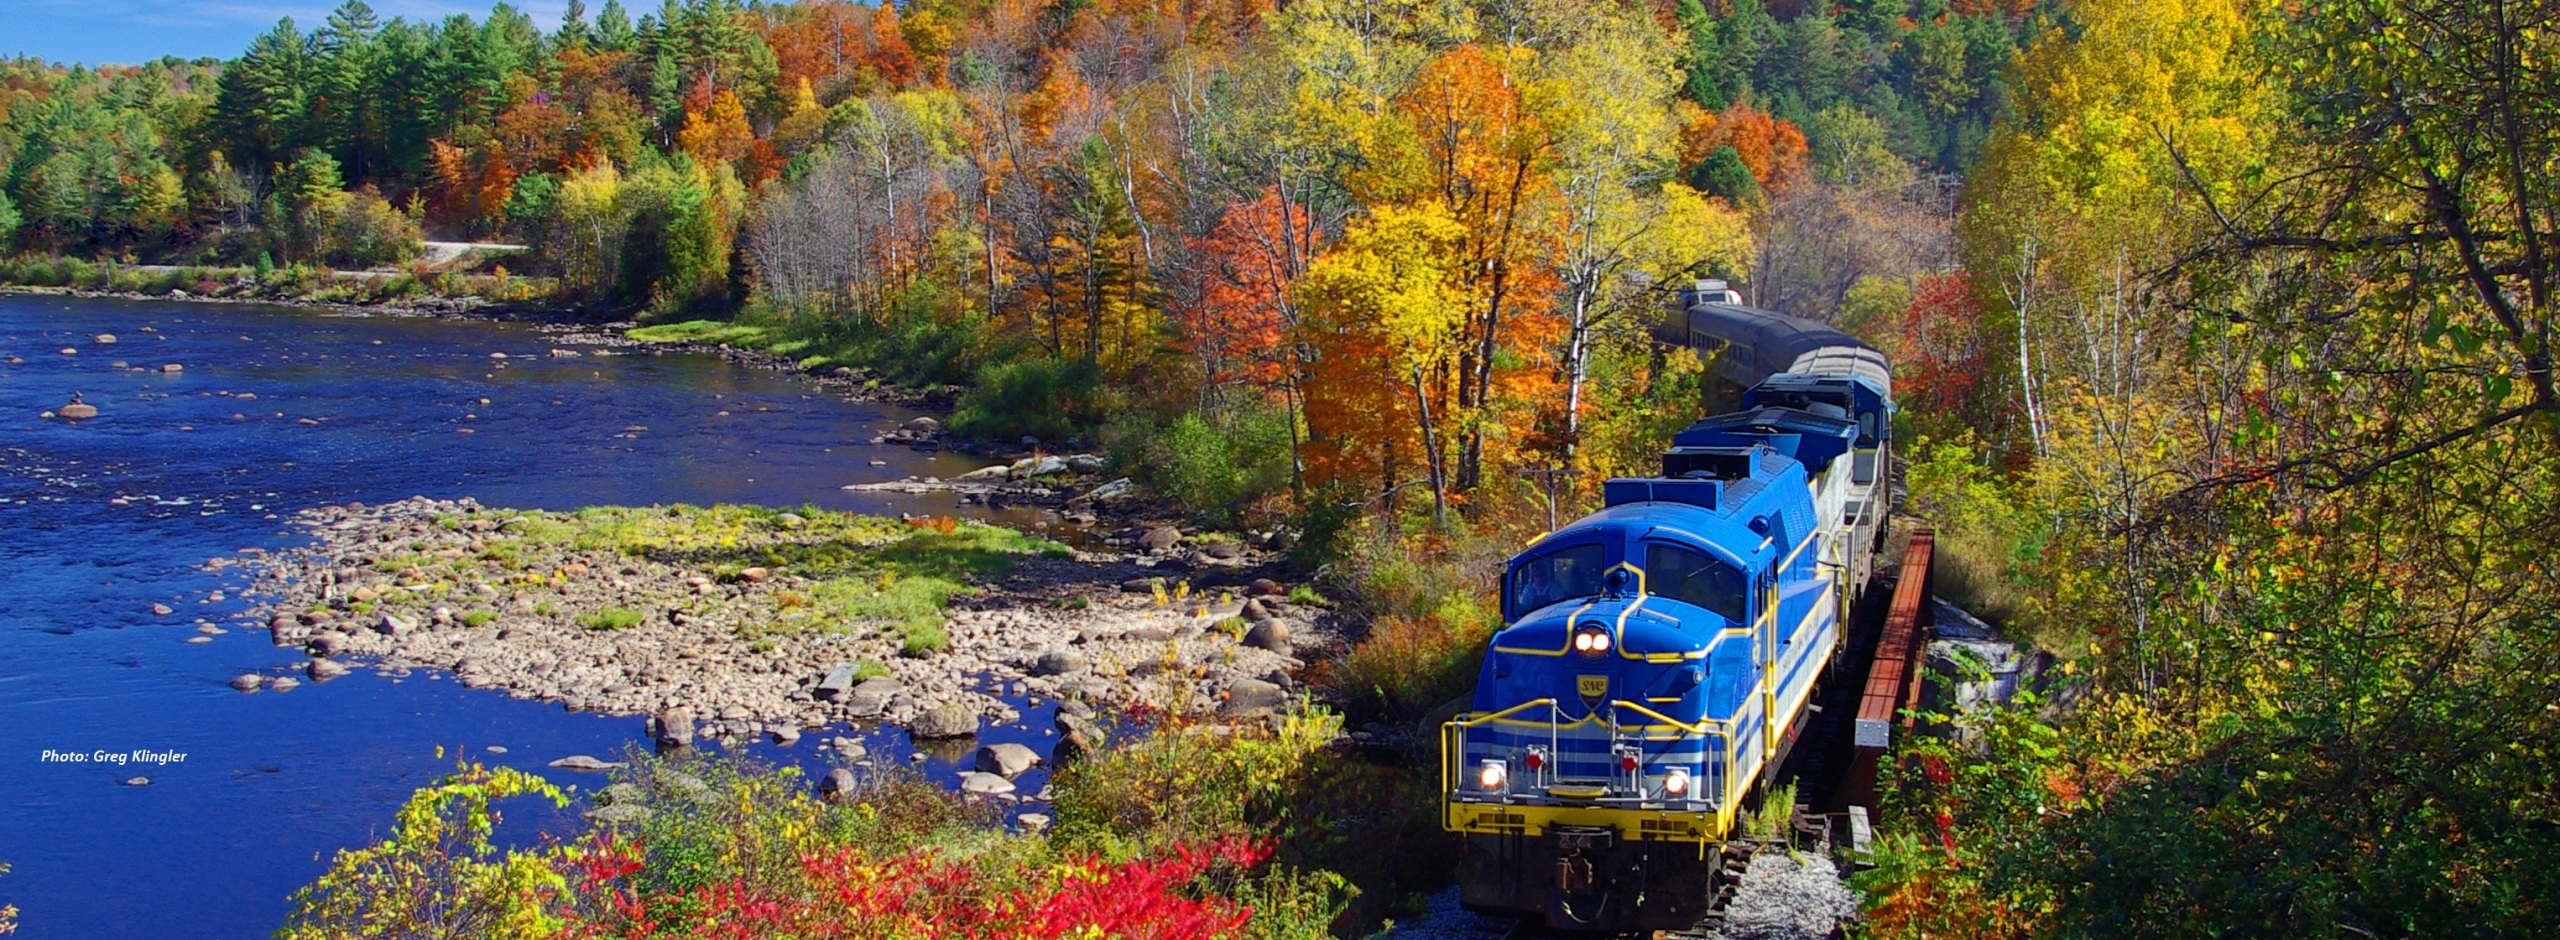 bl2-at-north-creek-bridge-2-fall-colors-header